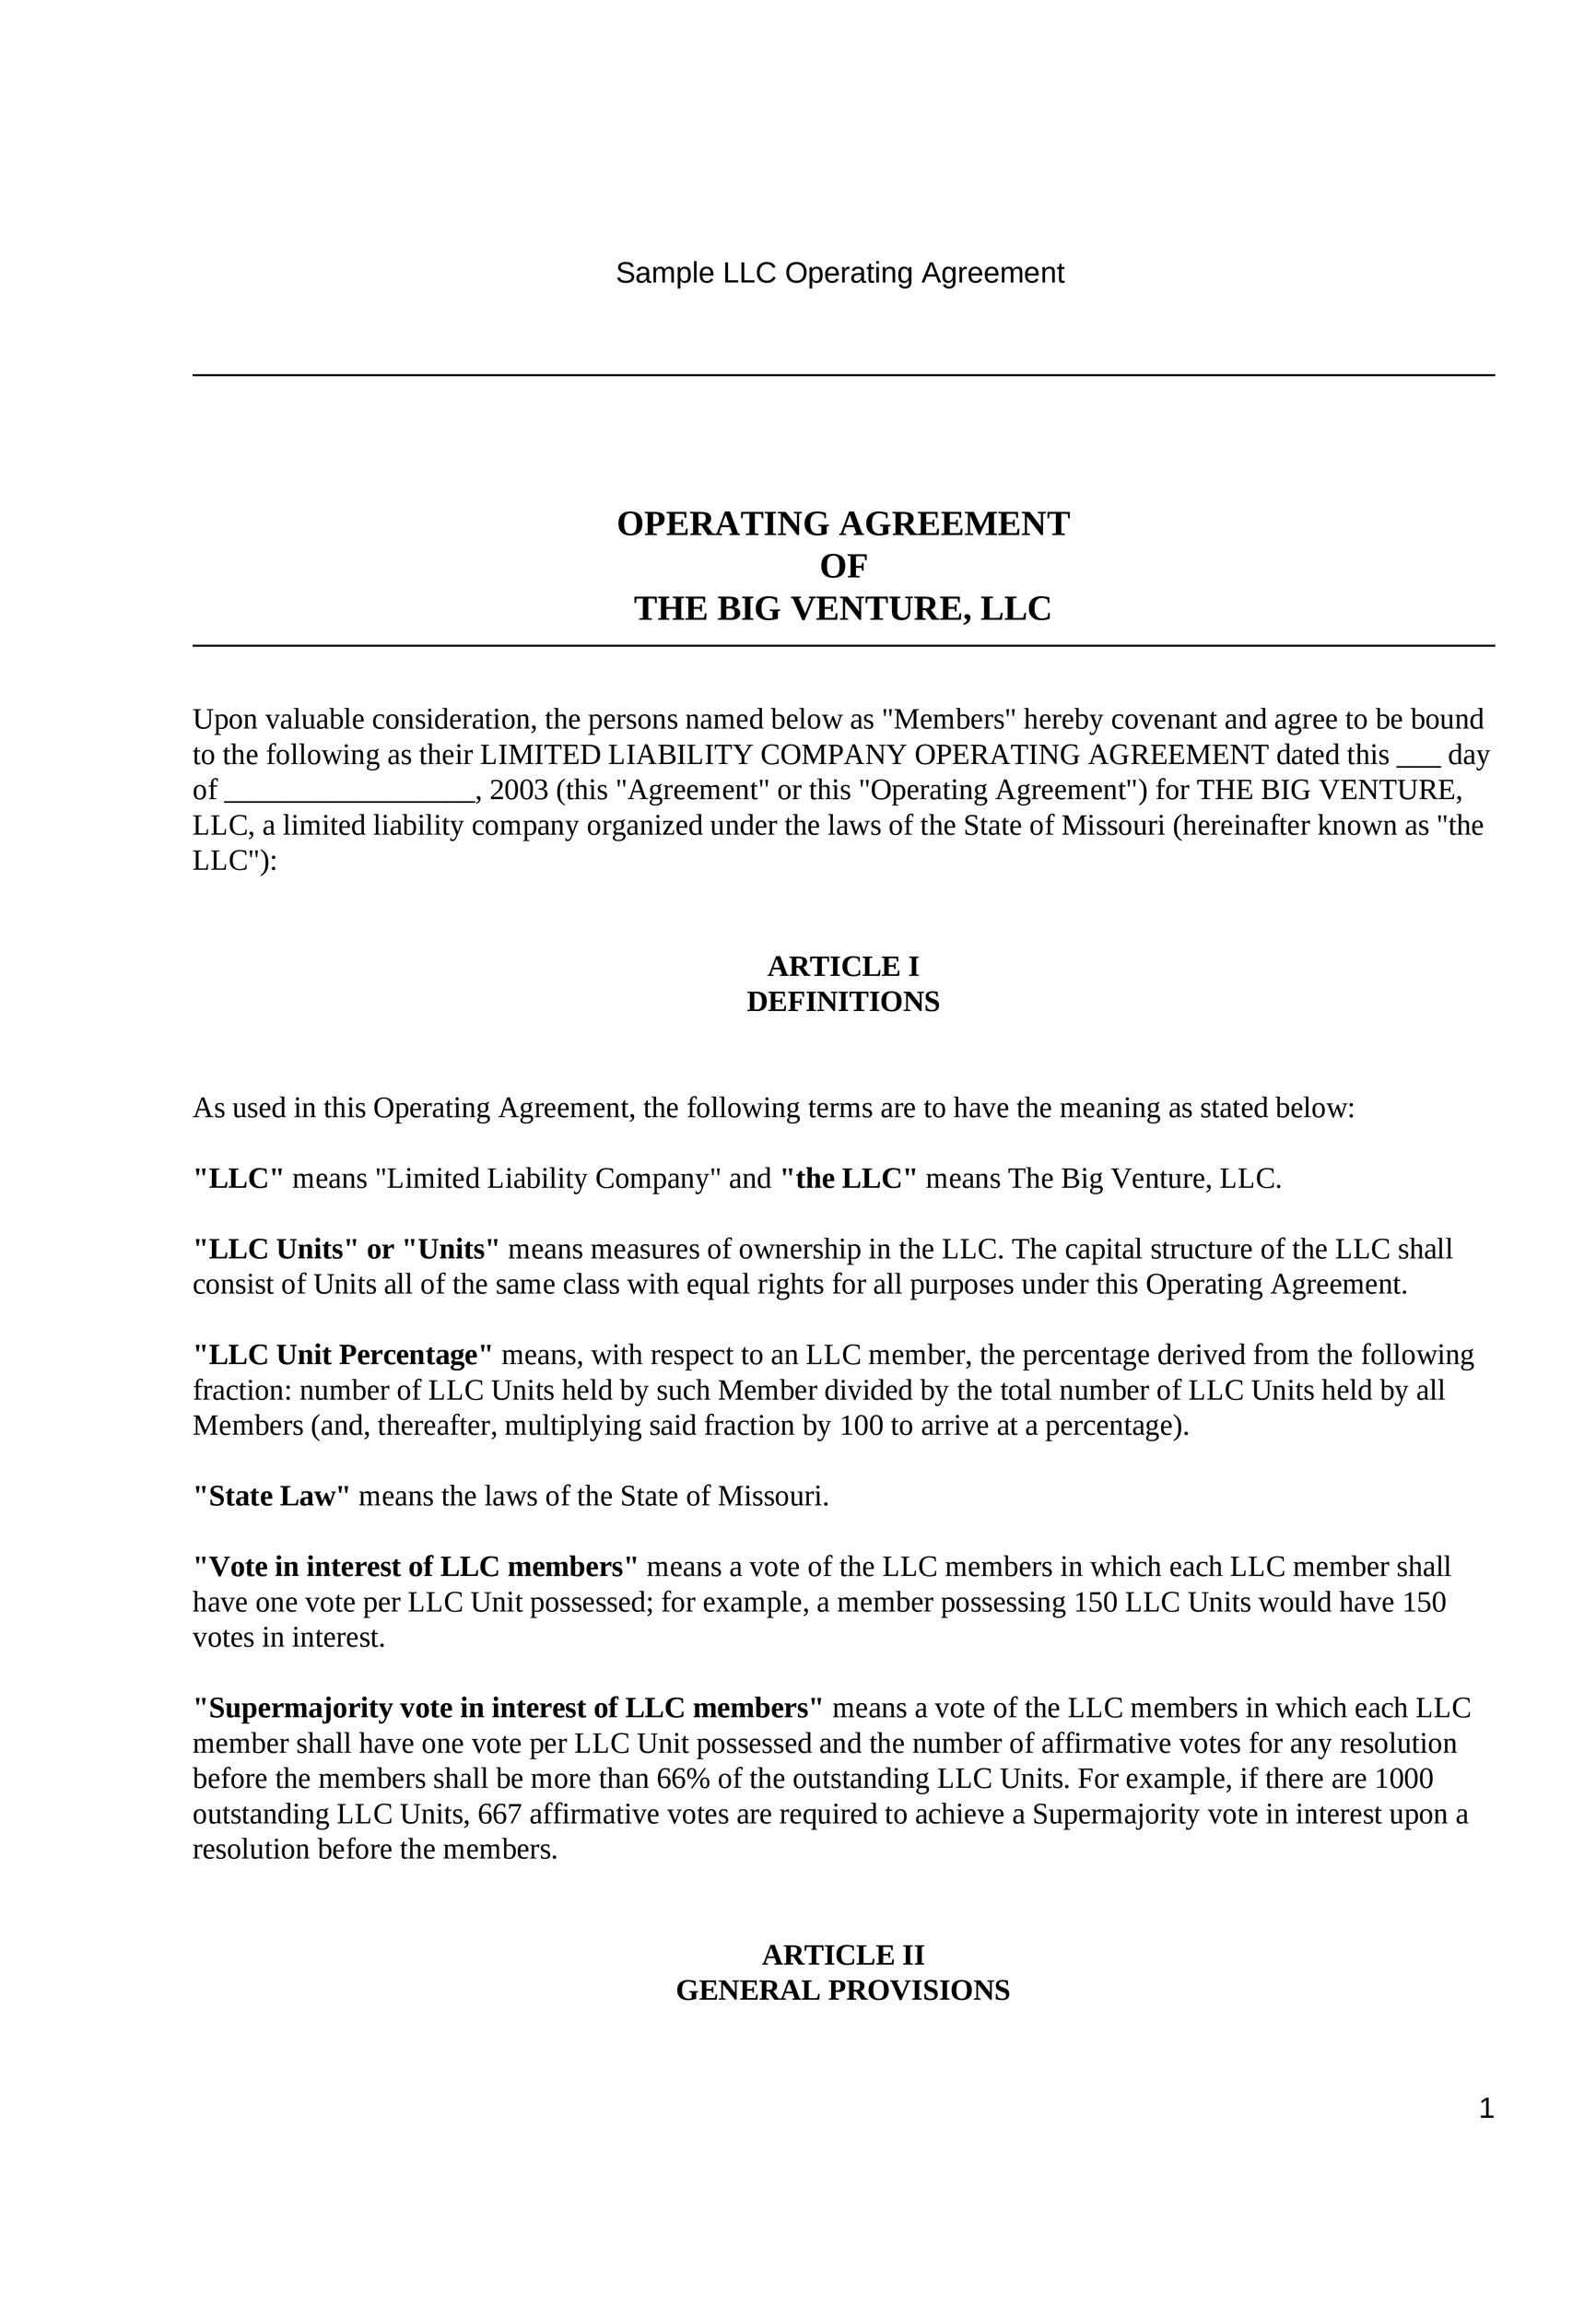 30 Professional Llc Operating Agreement Templates ᐅ